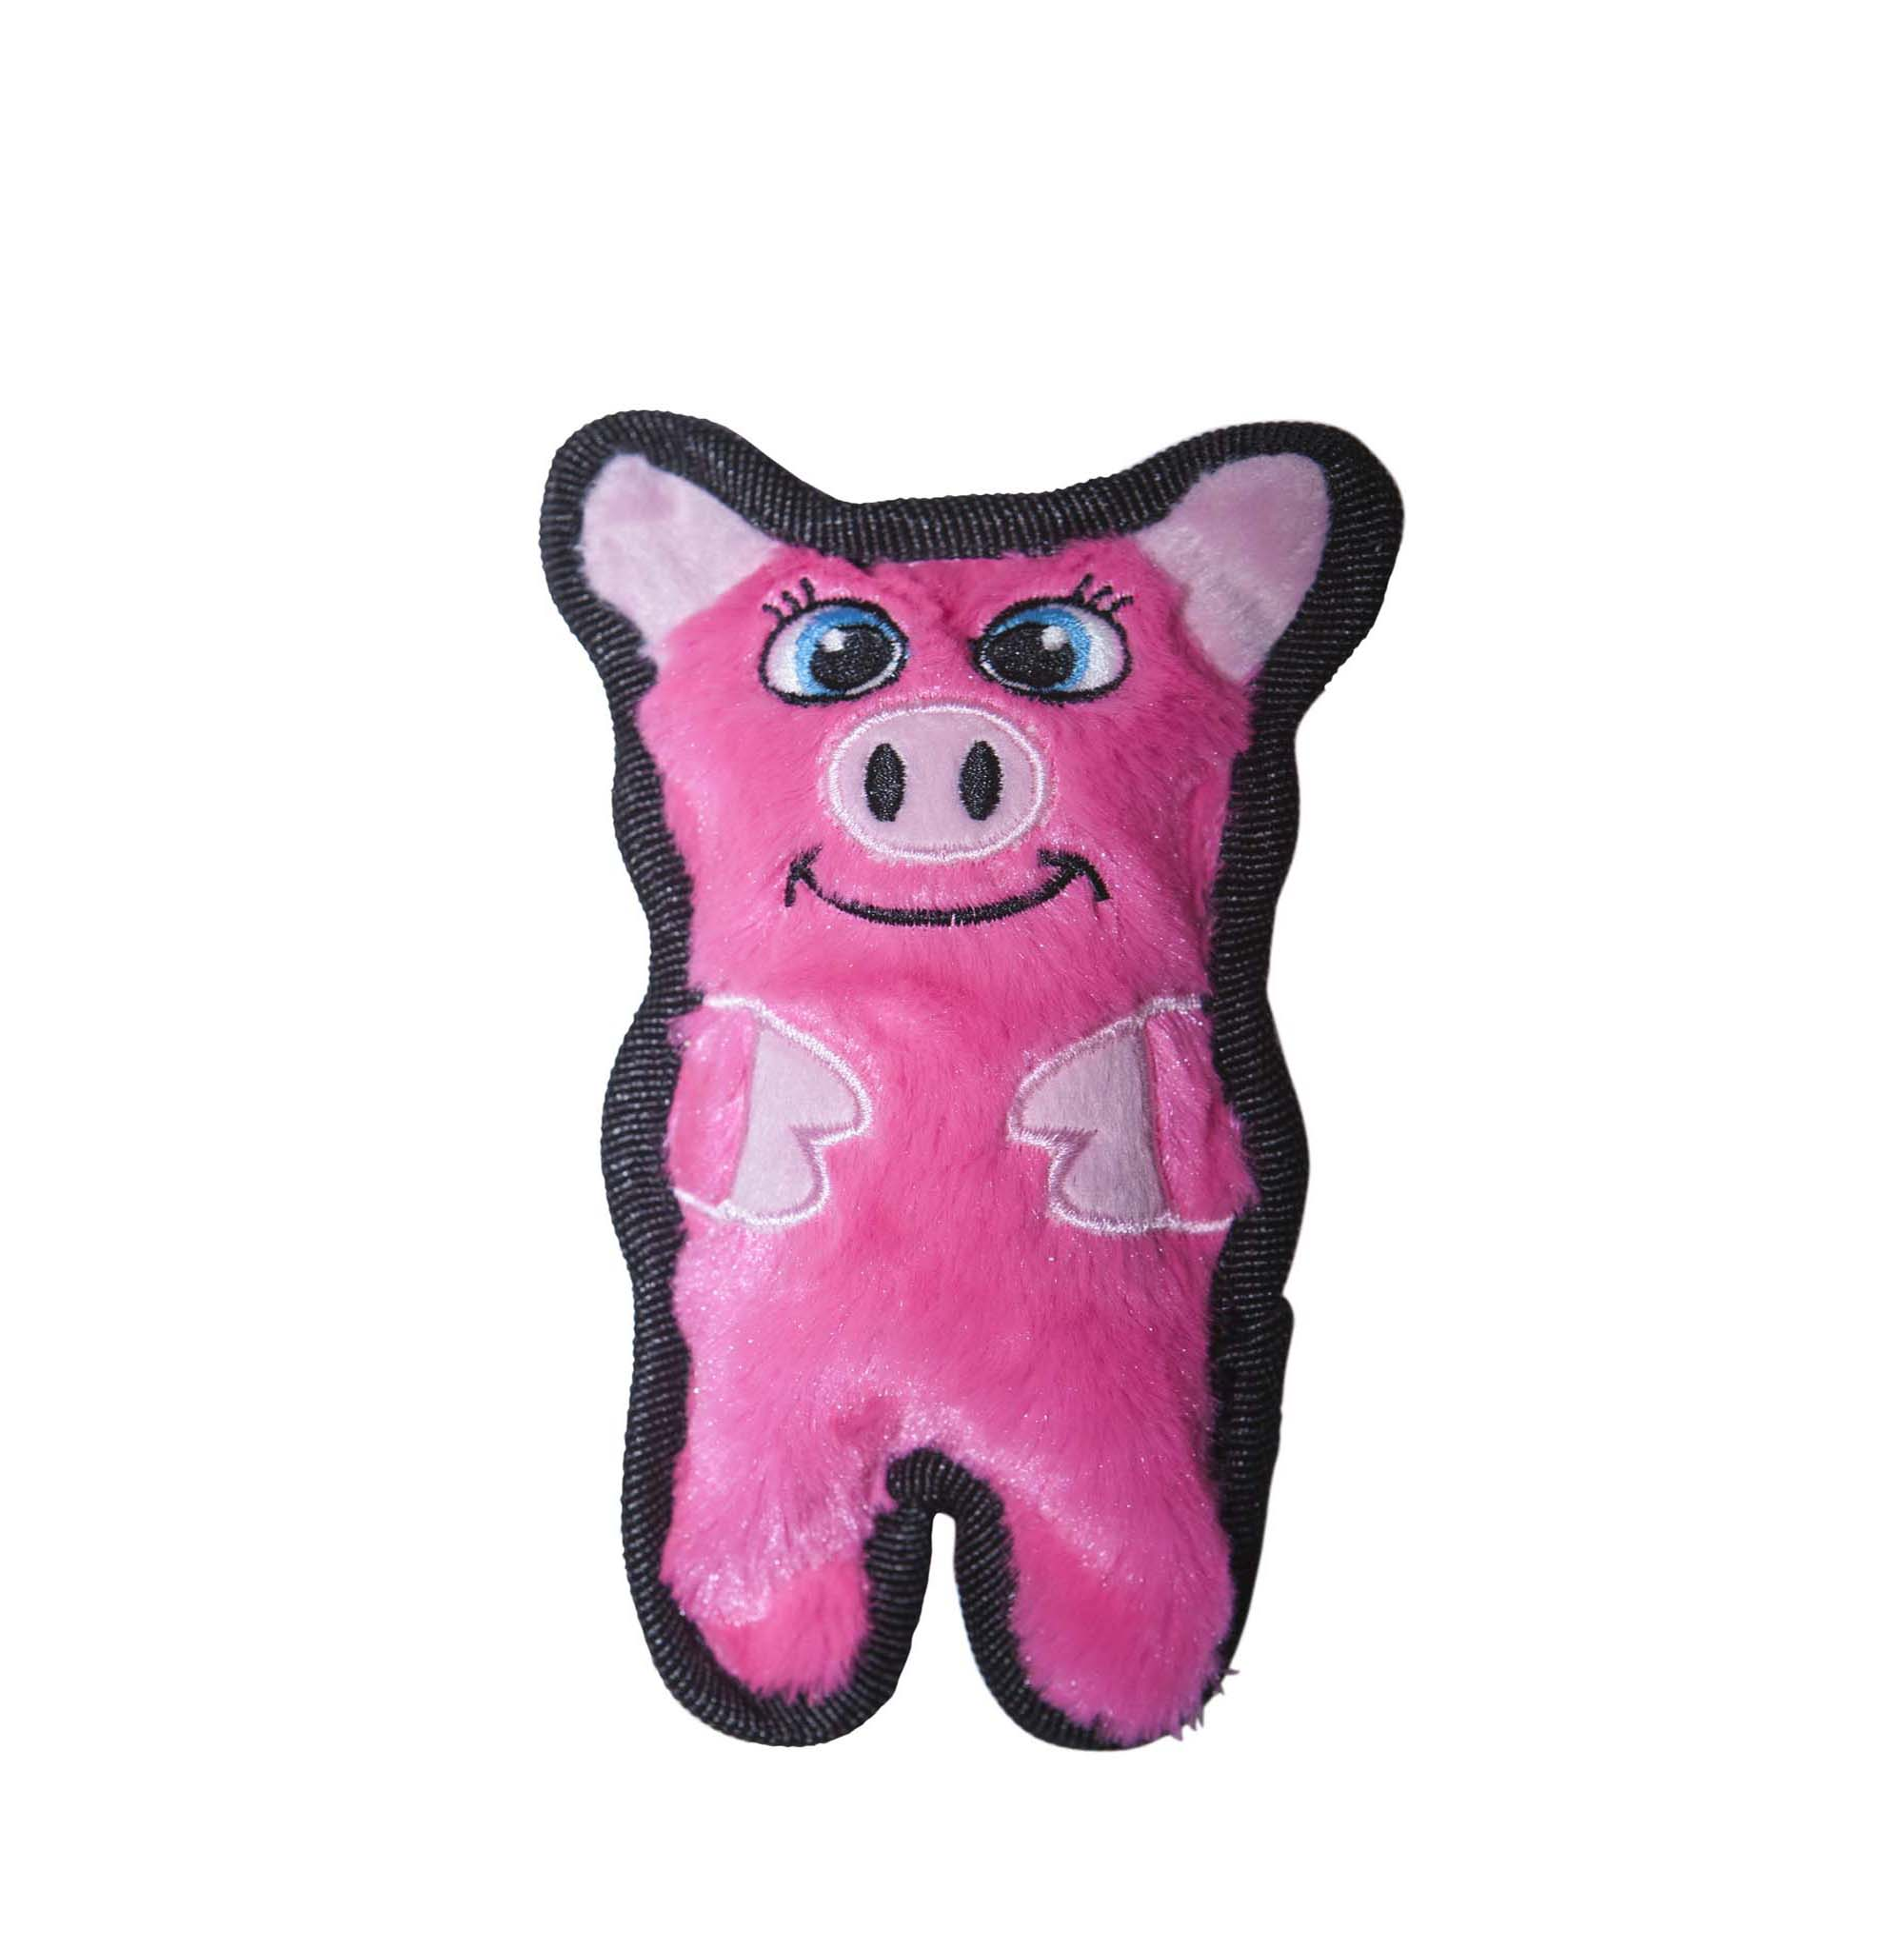 Invincibles Minis Stuffingless Durable Tough Plush Dog Squeaky Toy by Outward Hound, 1 Squeaker, Pig